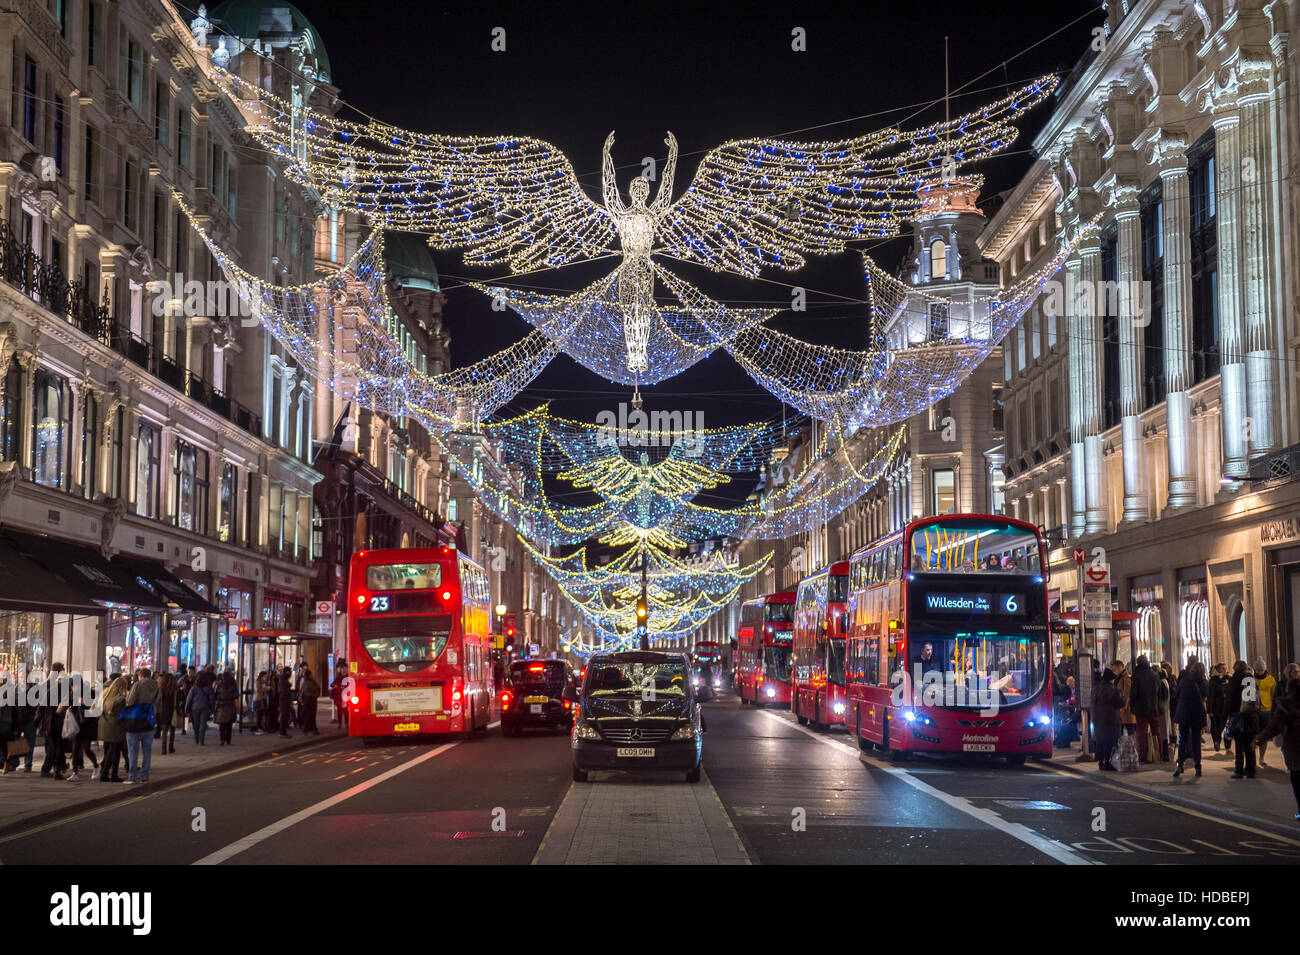 LONDON - NOVEMBER 18, 2016: Traditional black taxi awaits customers under twinkling Christmas angels lighting up - Stock Image